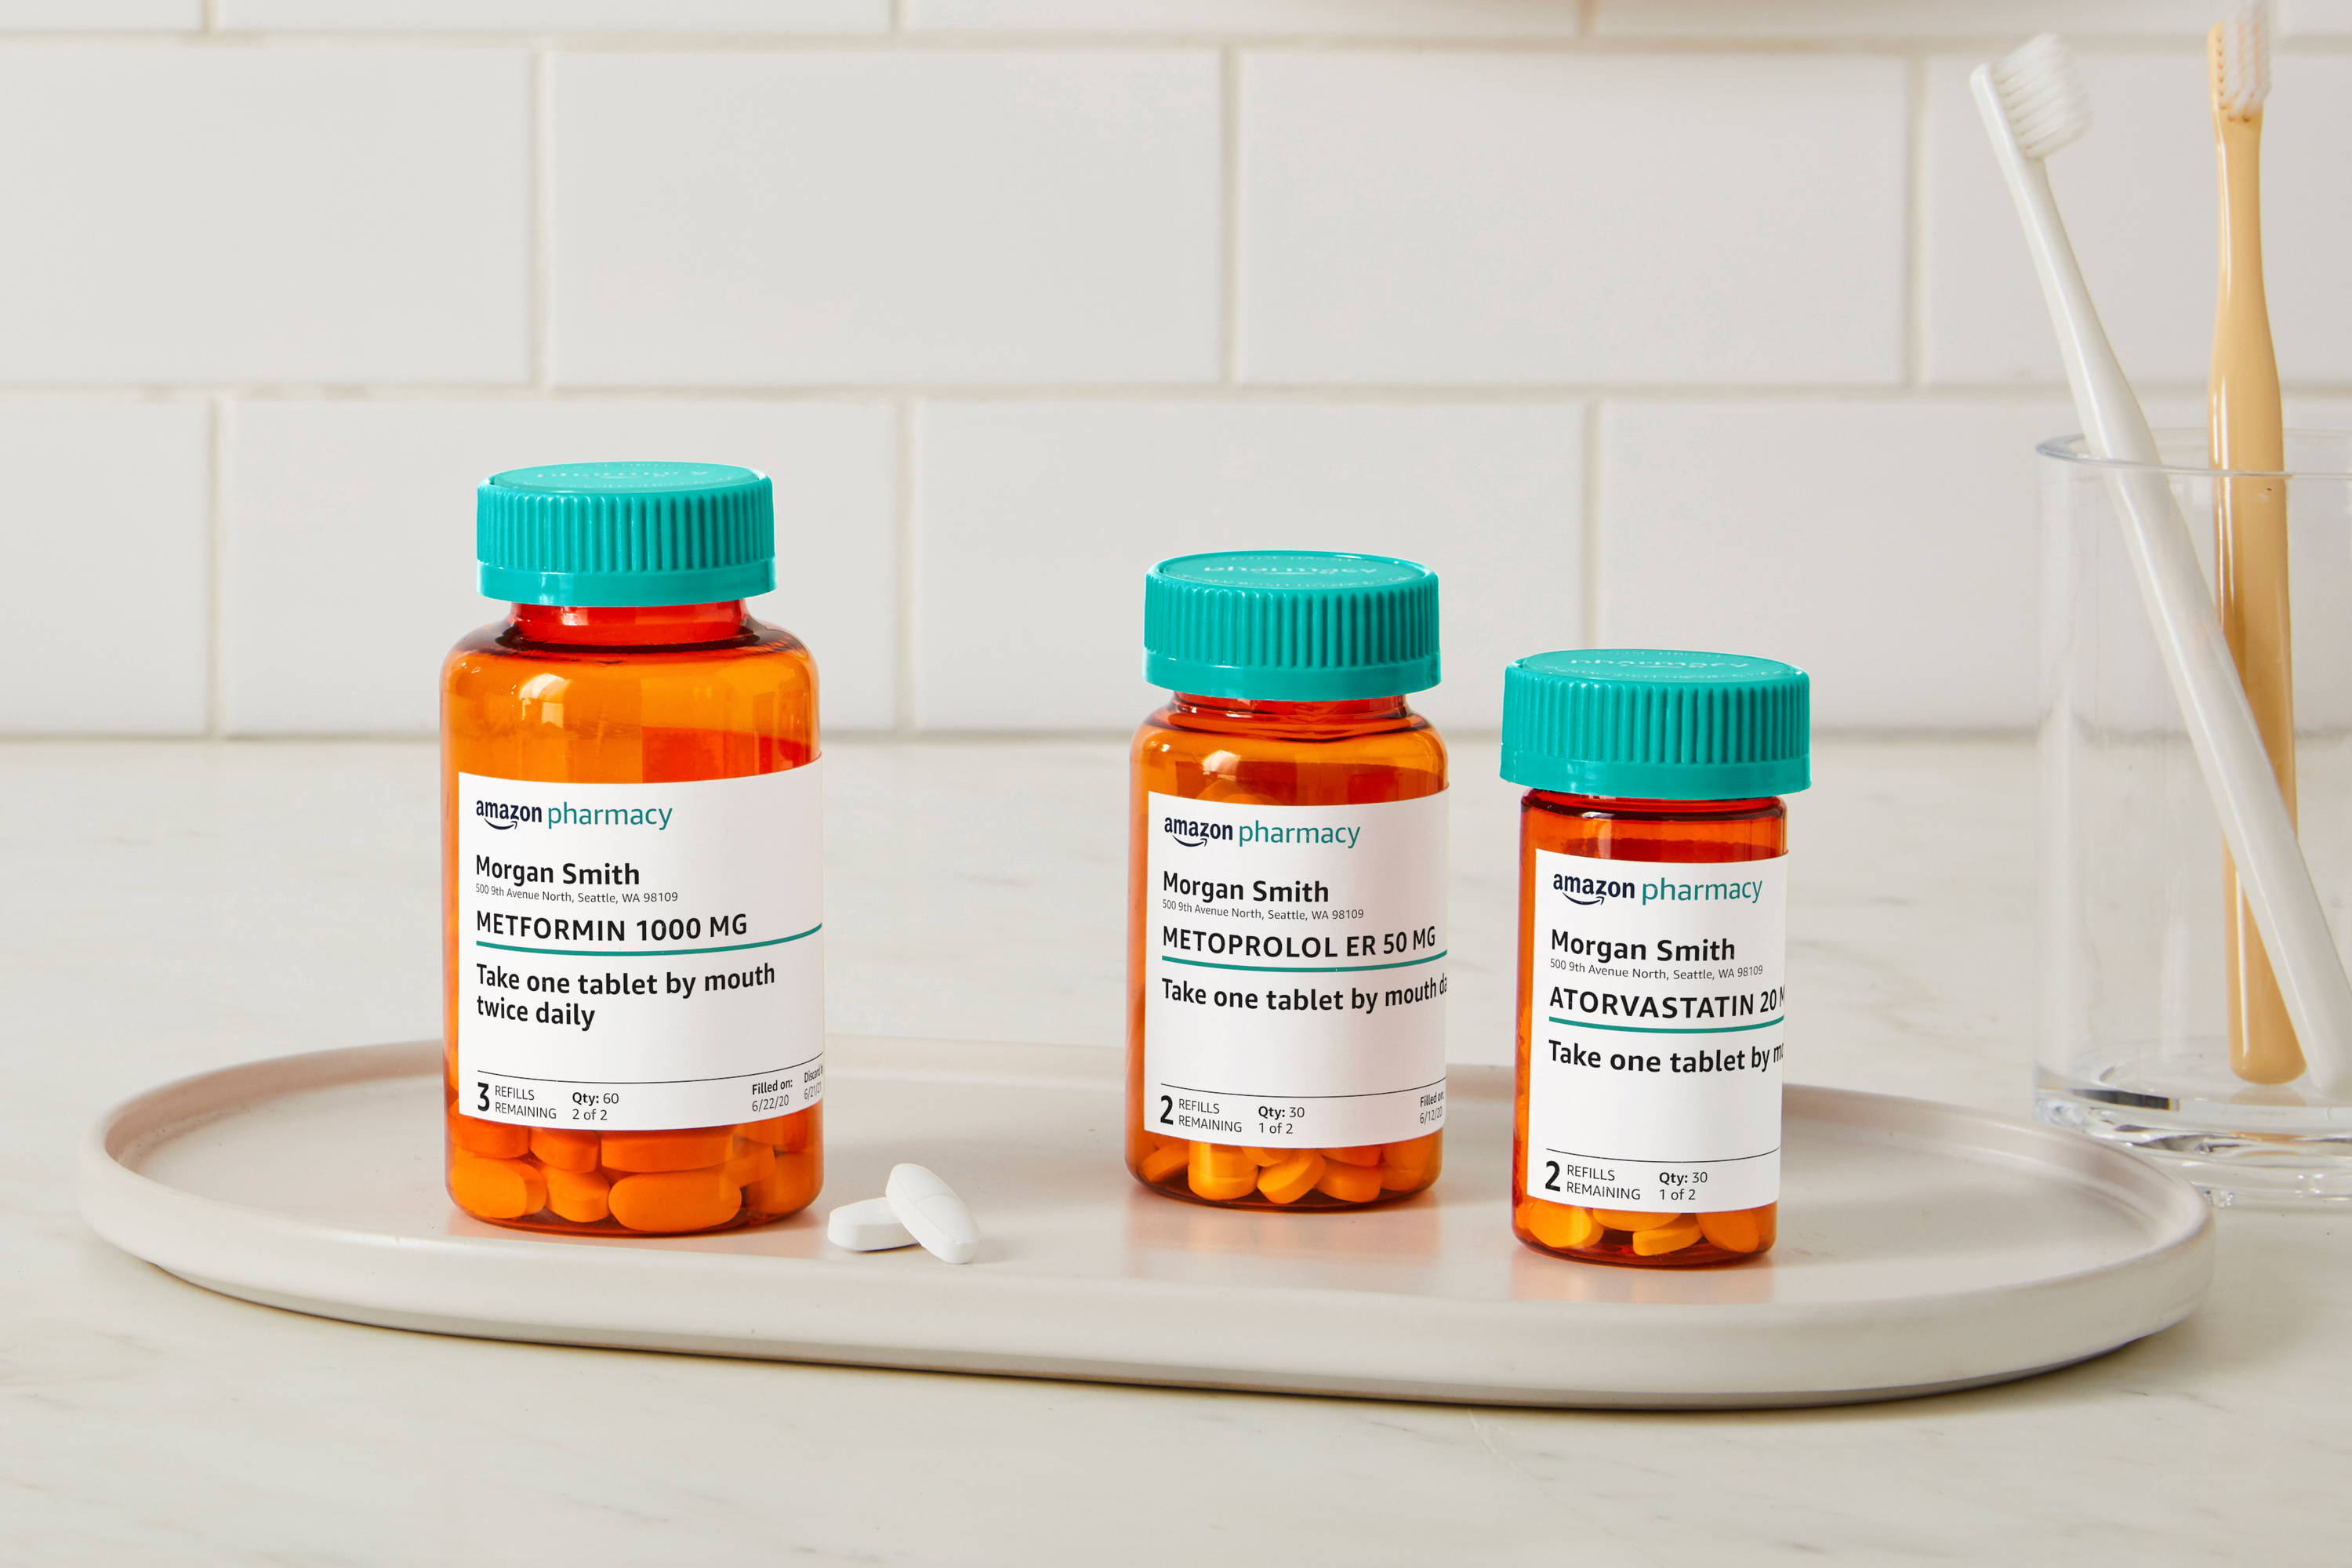 Amazon expands push into health care with online pharmacy